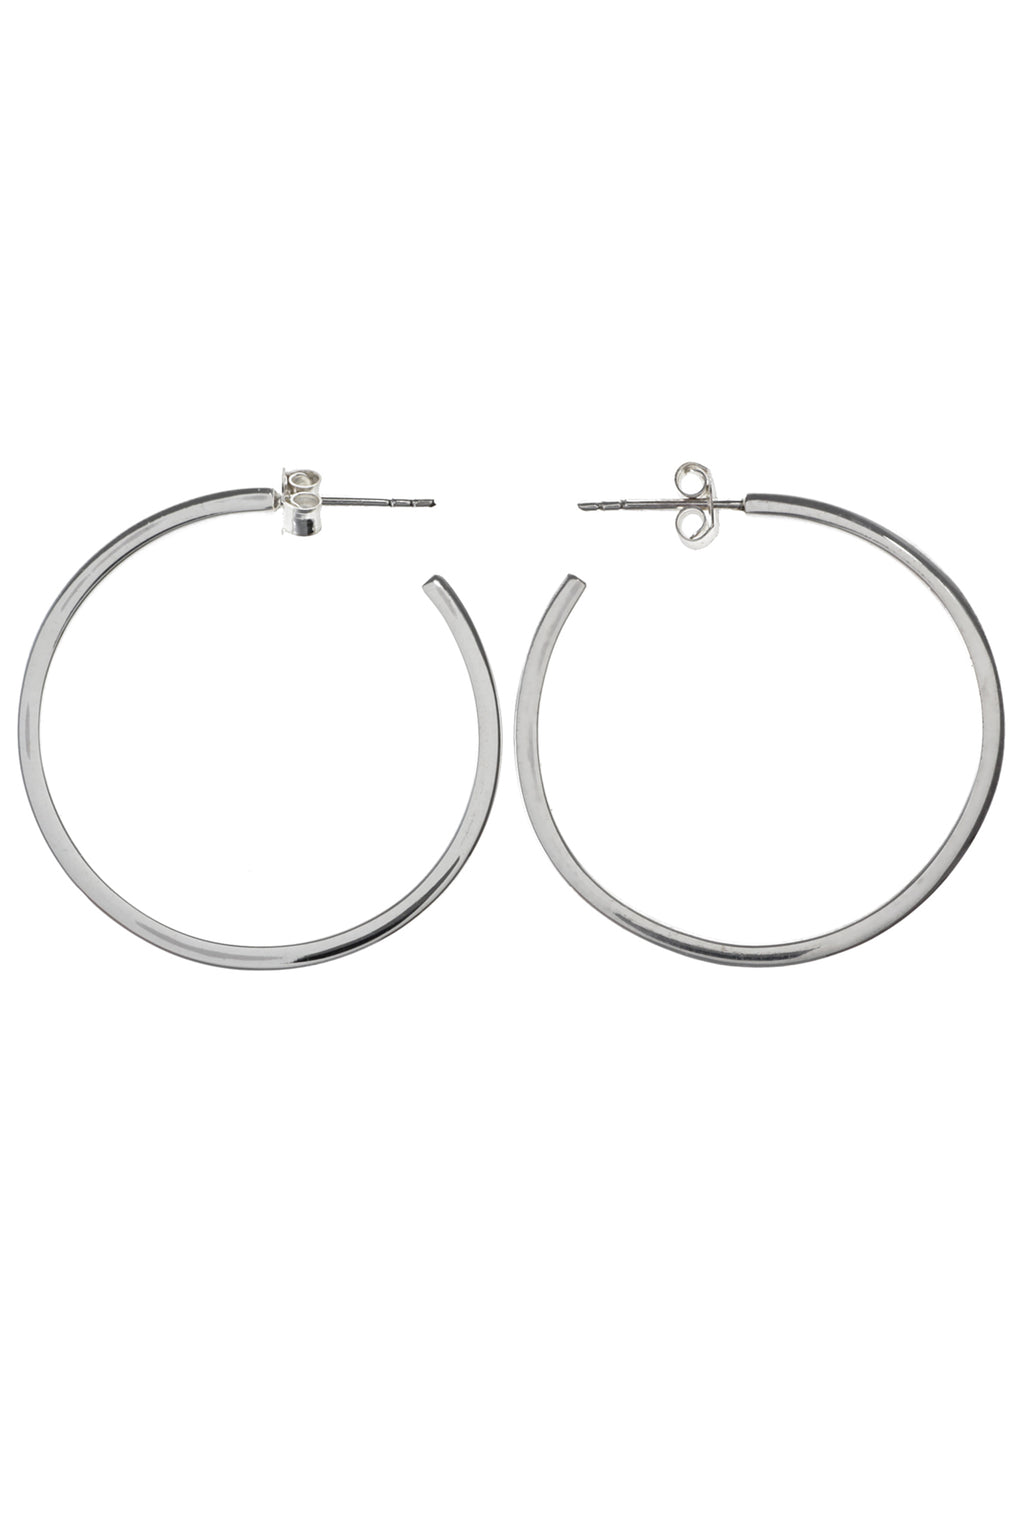 Slim Silver Hoop Earrings